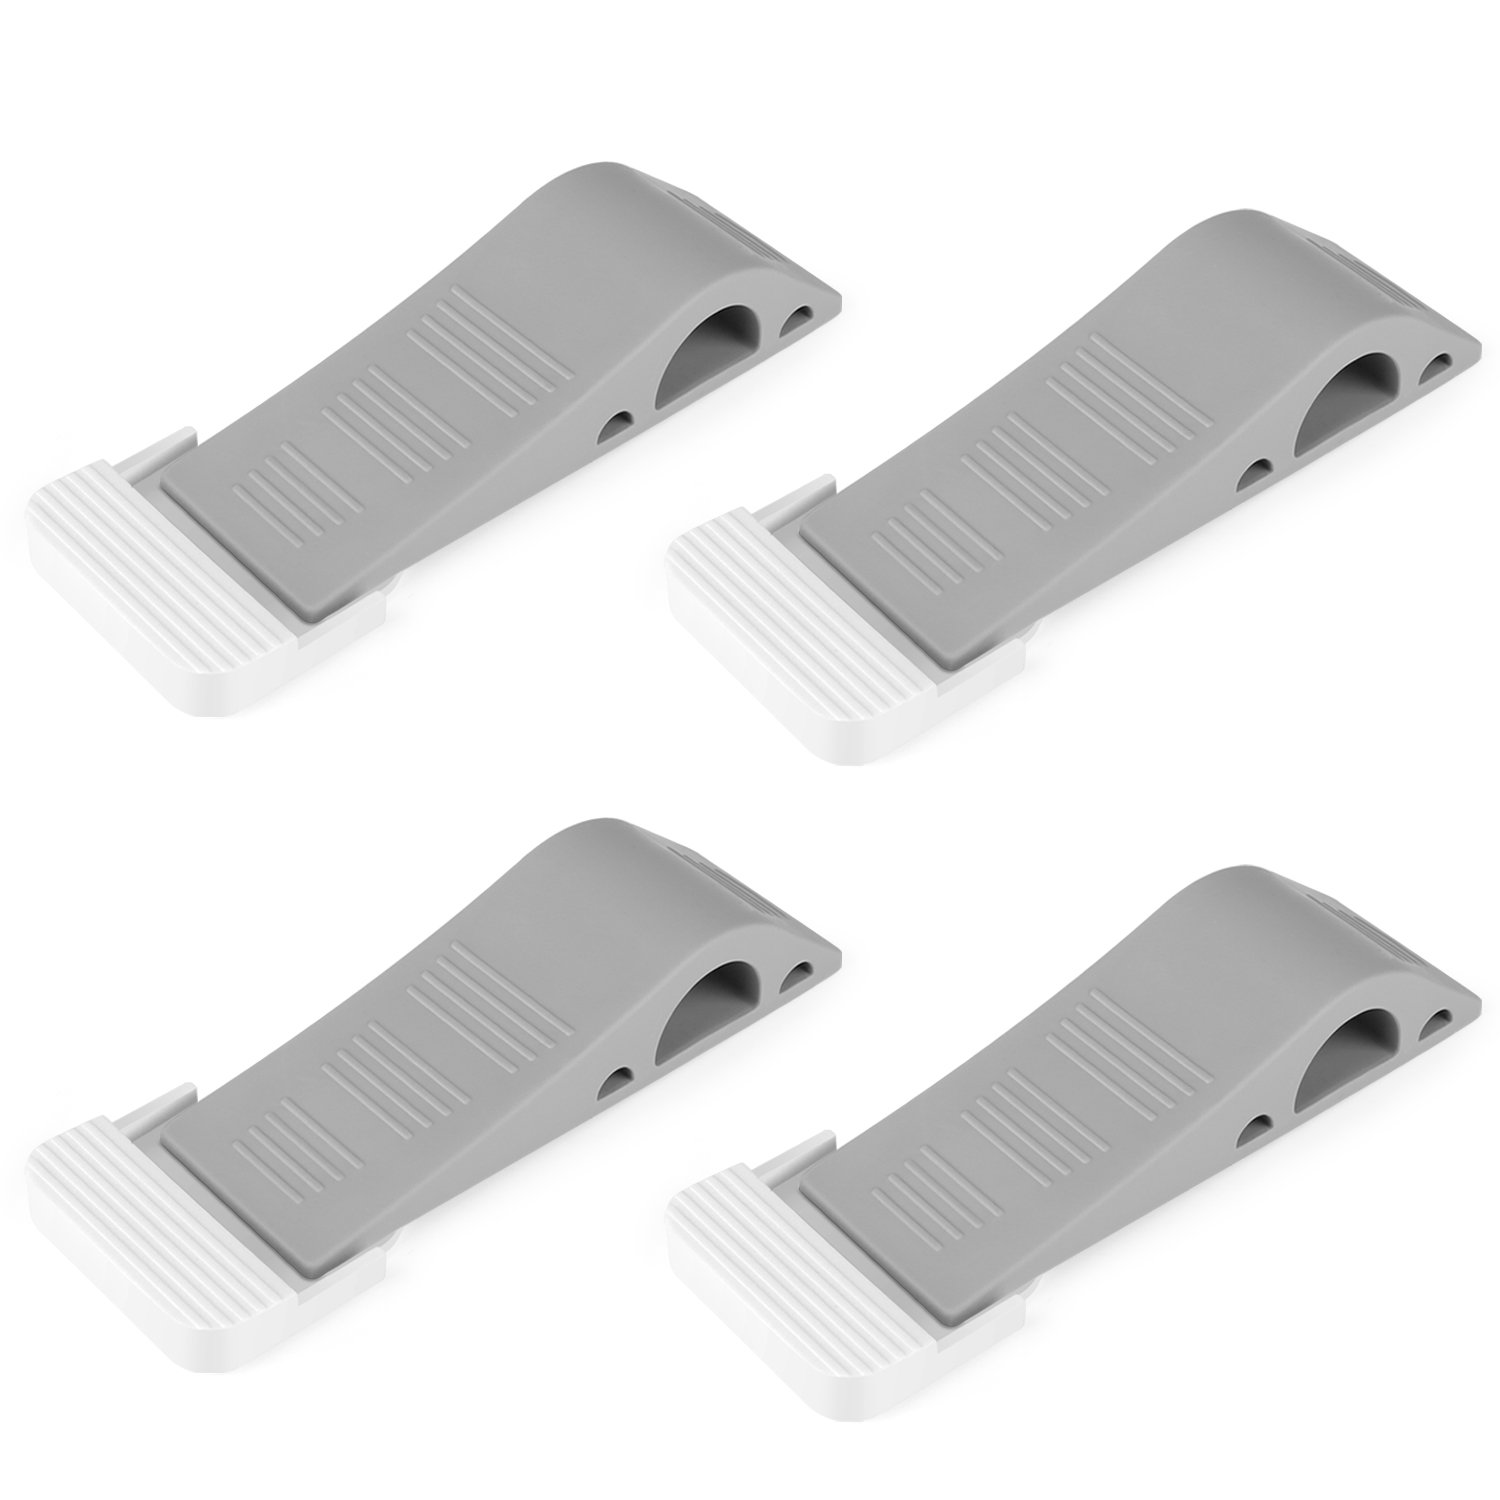 Door Stopper - Multi Surface Door Stop Wedge with Heavy Duty Design - Tall and Adjustable, Solid Stable Base, Flexible and Non Scratching Door Holder(4Pack - Gray) (4Pack-Gray) SANTIAOTUI